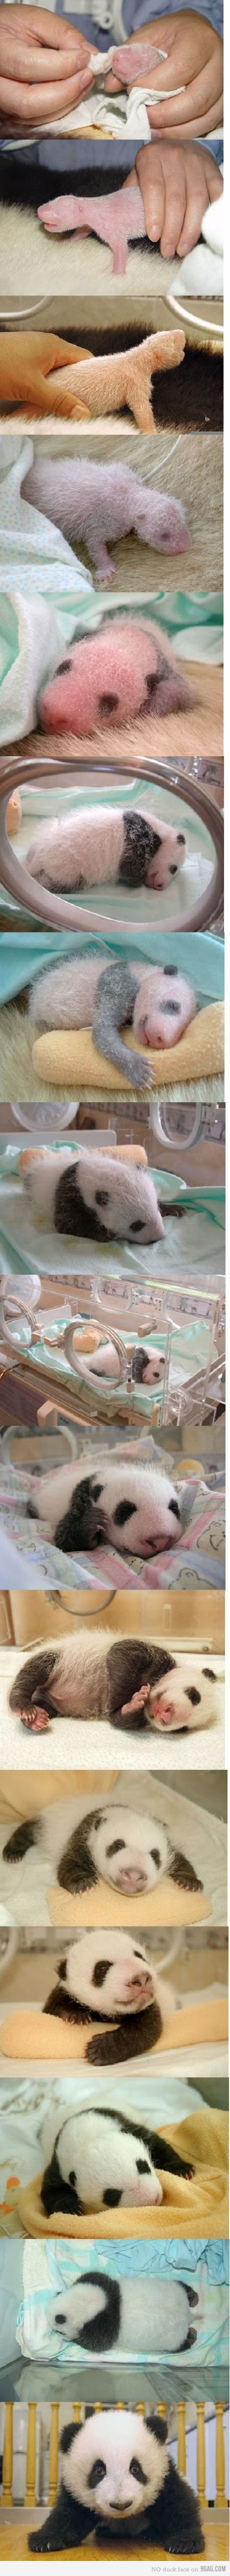 birth of a baby Panda bear. awesome!Pandas Baby, Baby Pandas, Pets, Growing Up, Pandas Bears, Adorable, Things, Panda Bears, Animal